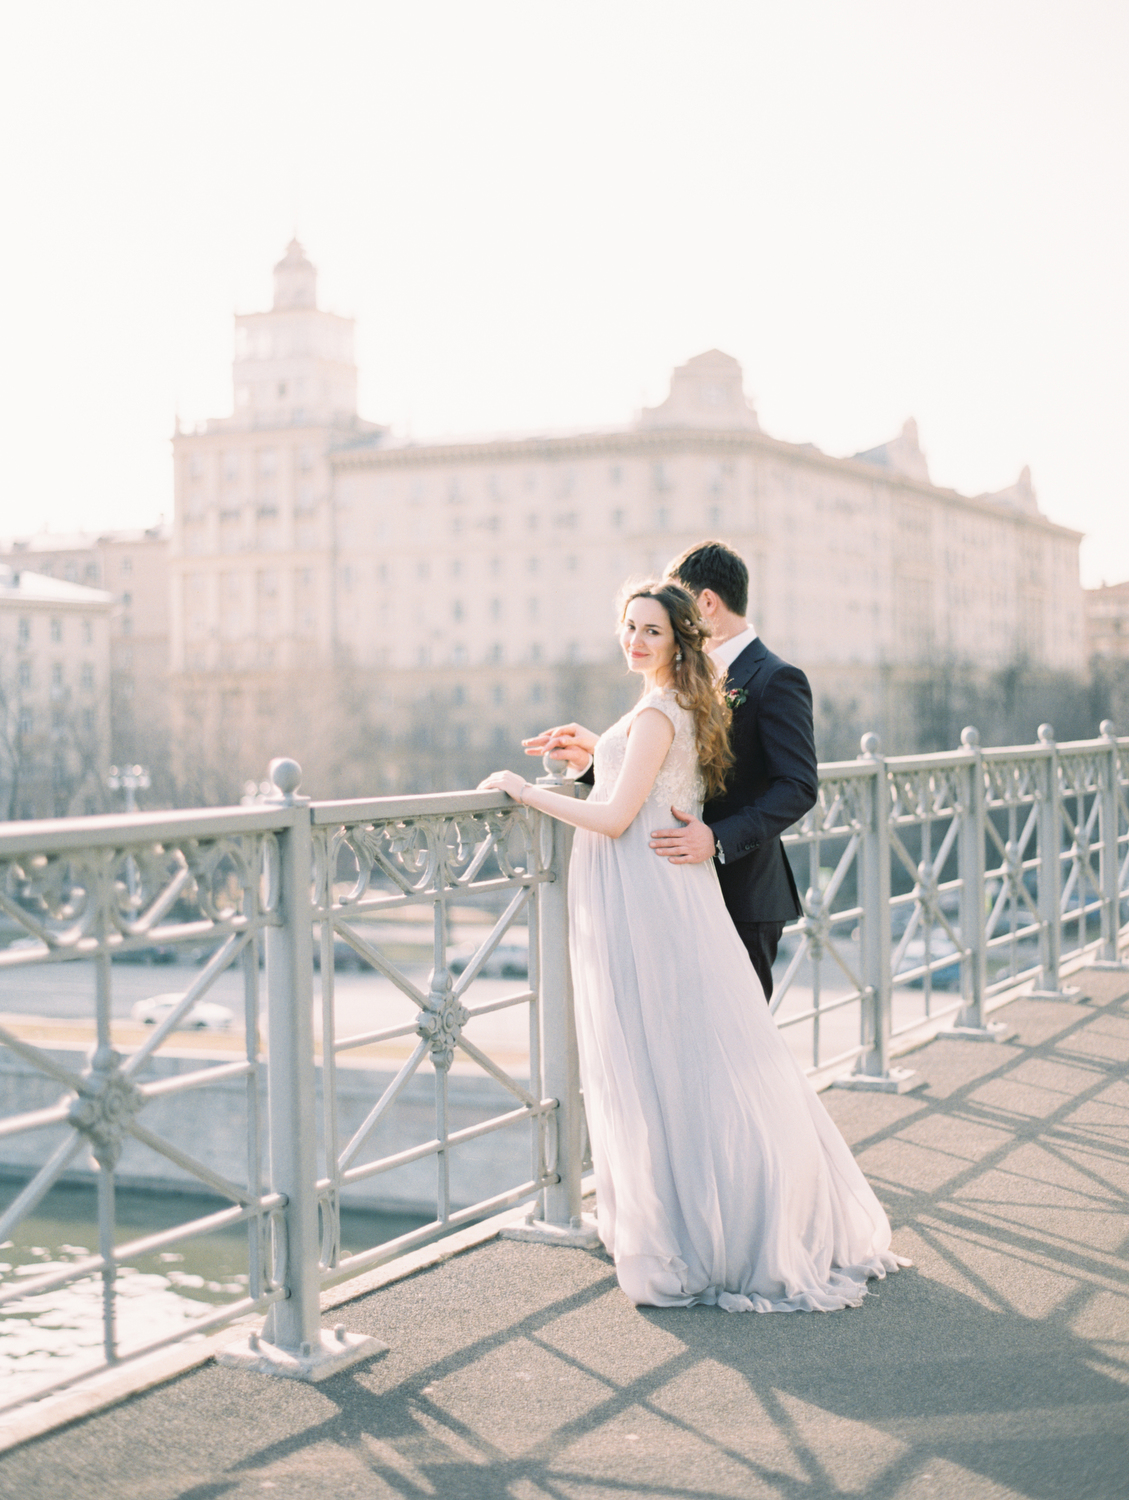 A&K_wed_by_Julia Kaptelova Phototgraphy-026